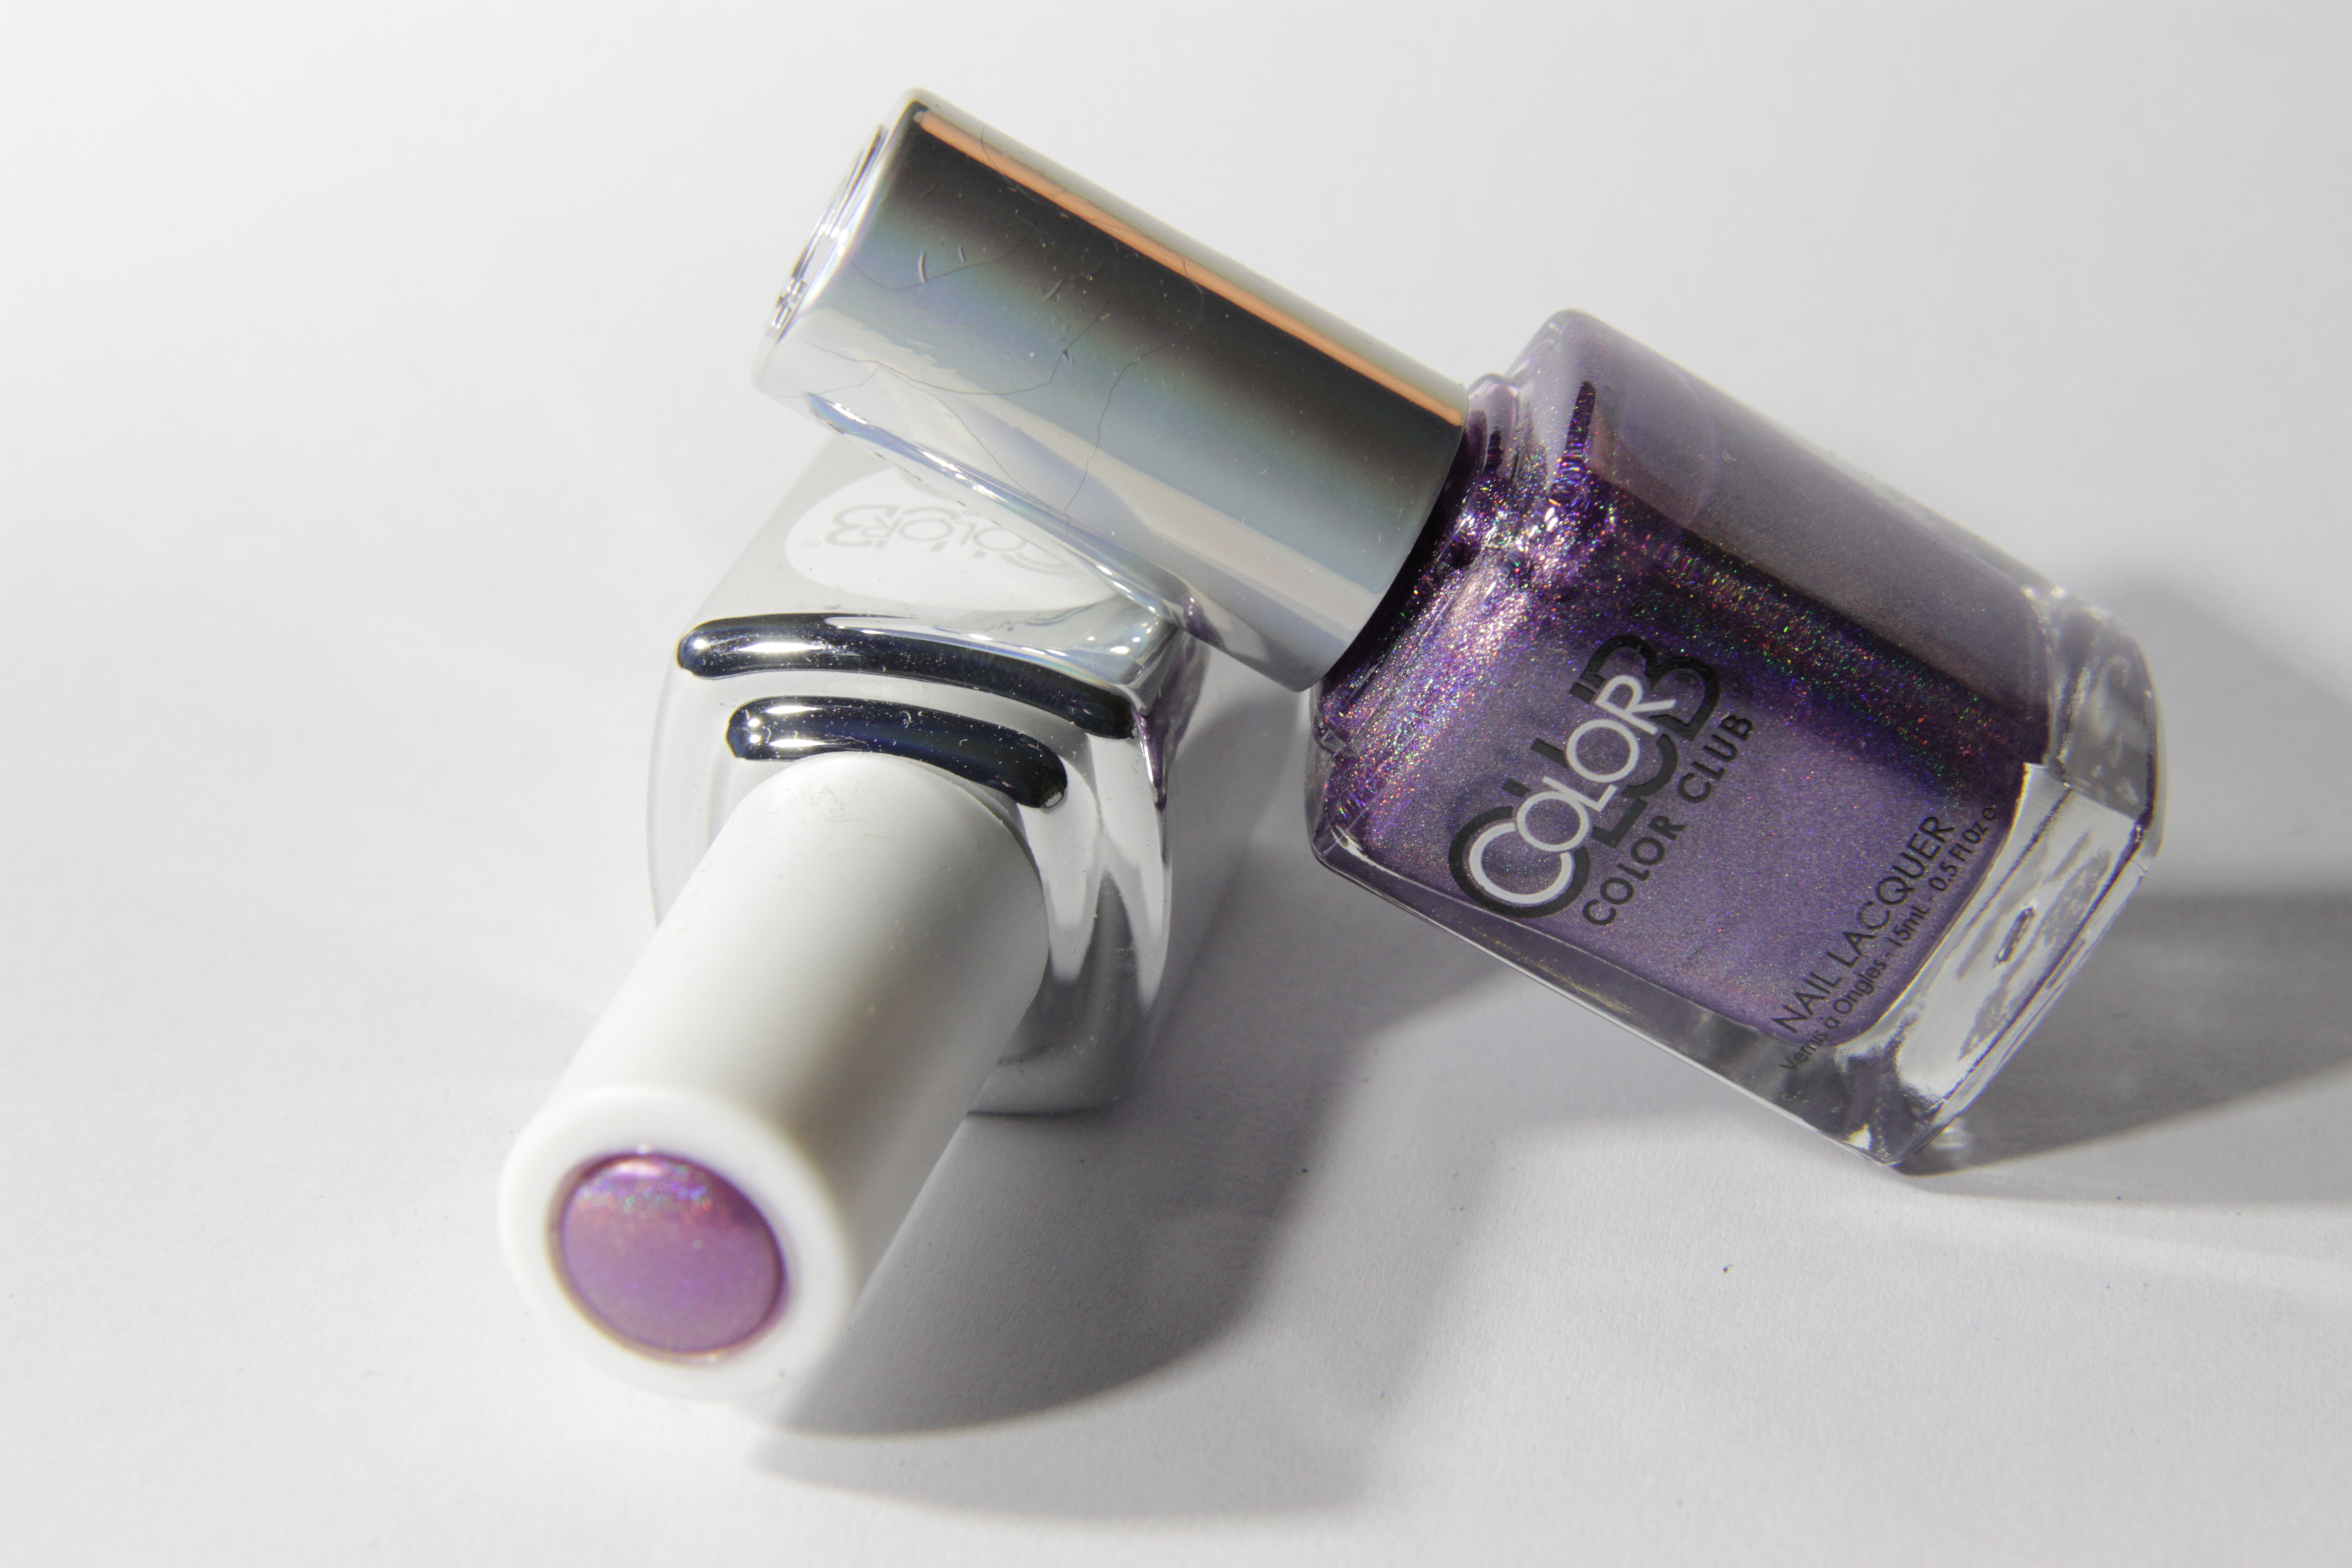 #0999 ETERNAL BEAUTY Color Club Duo Nagellack Nail Lacquer and Soak-Off Gel Polish Lila Chrom